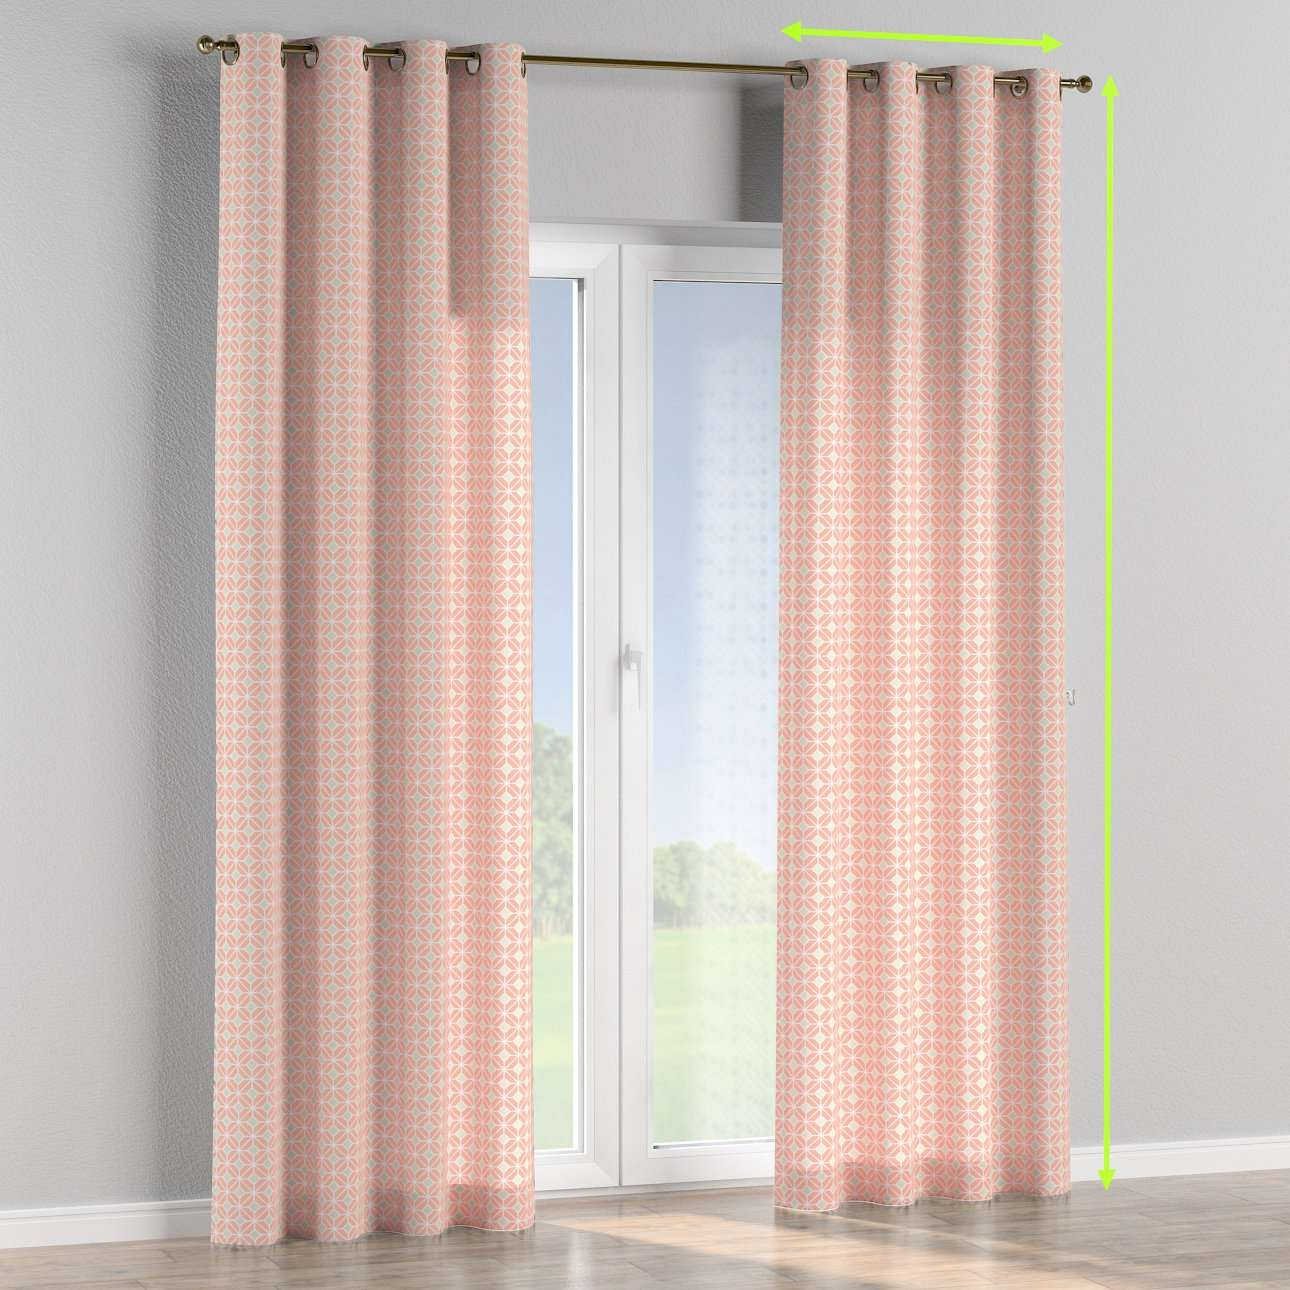 Eyelet lined curtains in collection Geometric, fabric: 141-48